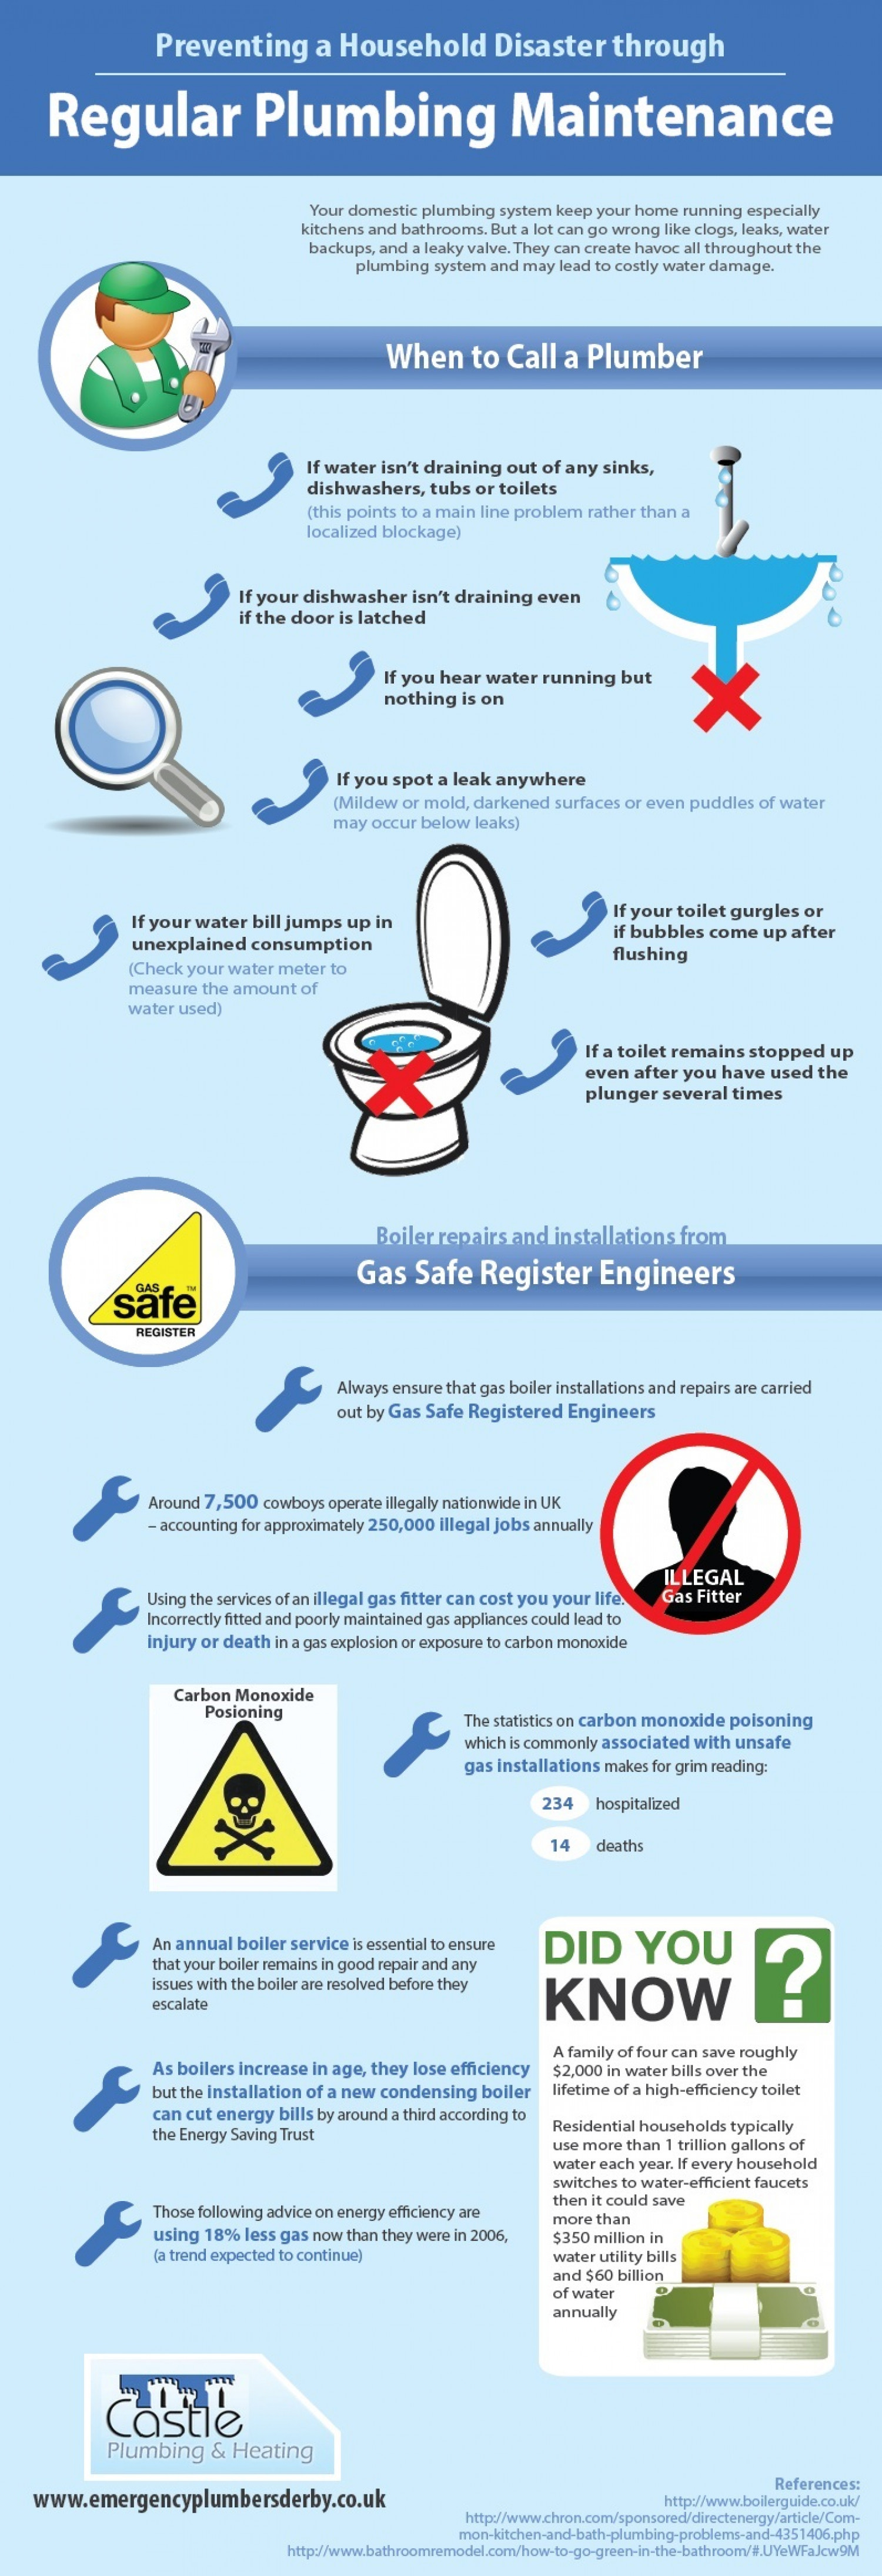 Preventing a Household Disaster through Regular Plumbing Maintenance Infographic